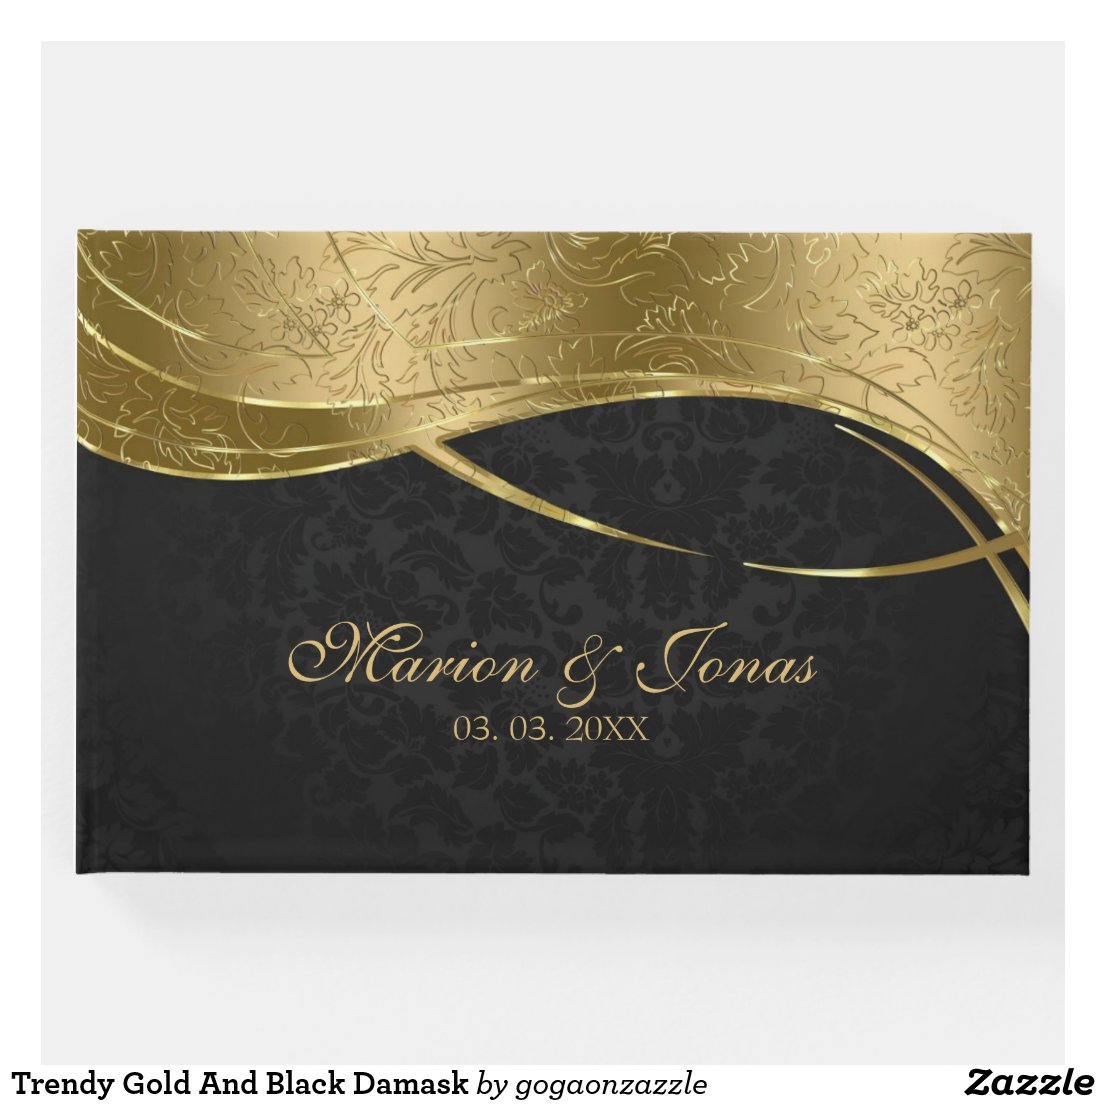 Trendy Gold And Black Damask